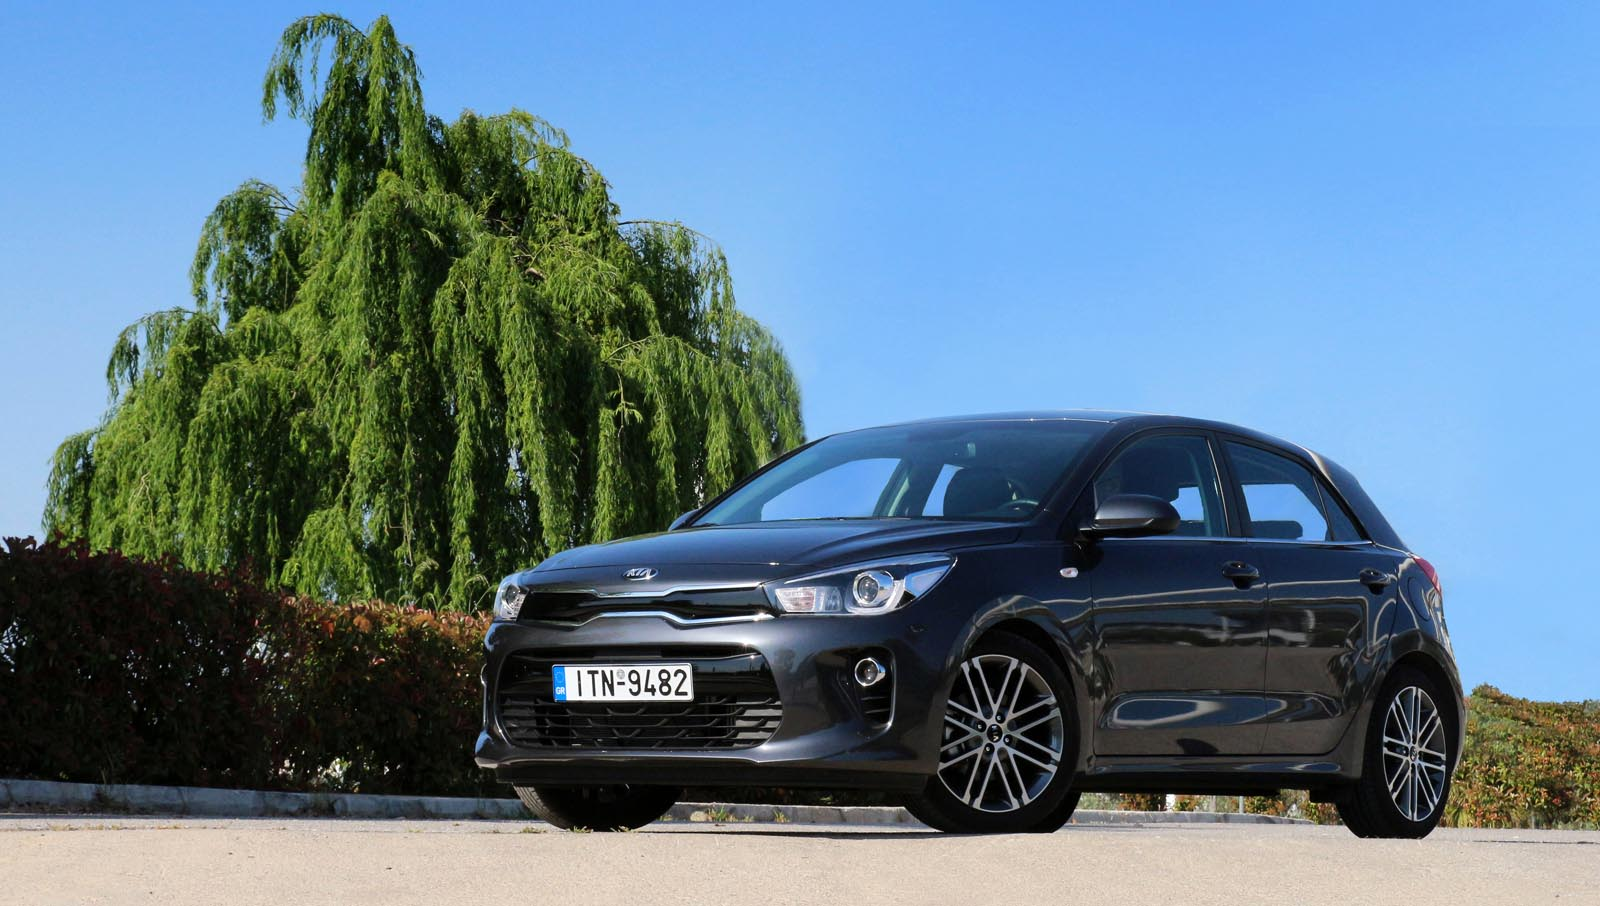 Photo of Kia Rio 1.0 T-GDi [test drive]